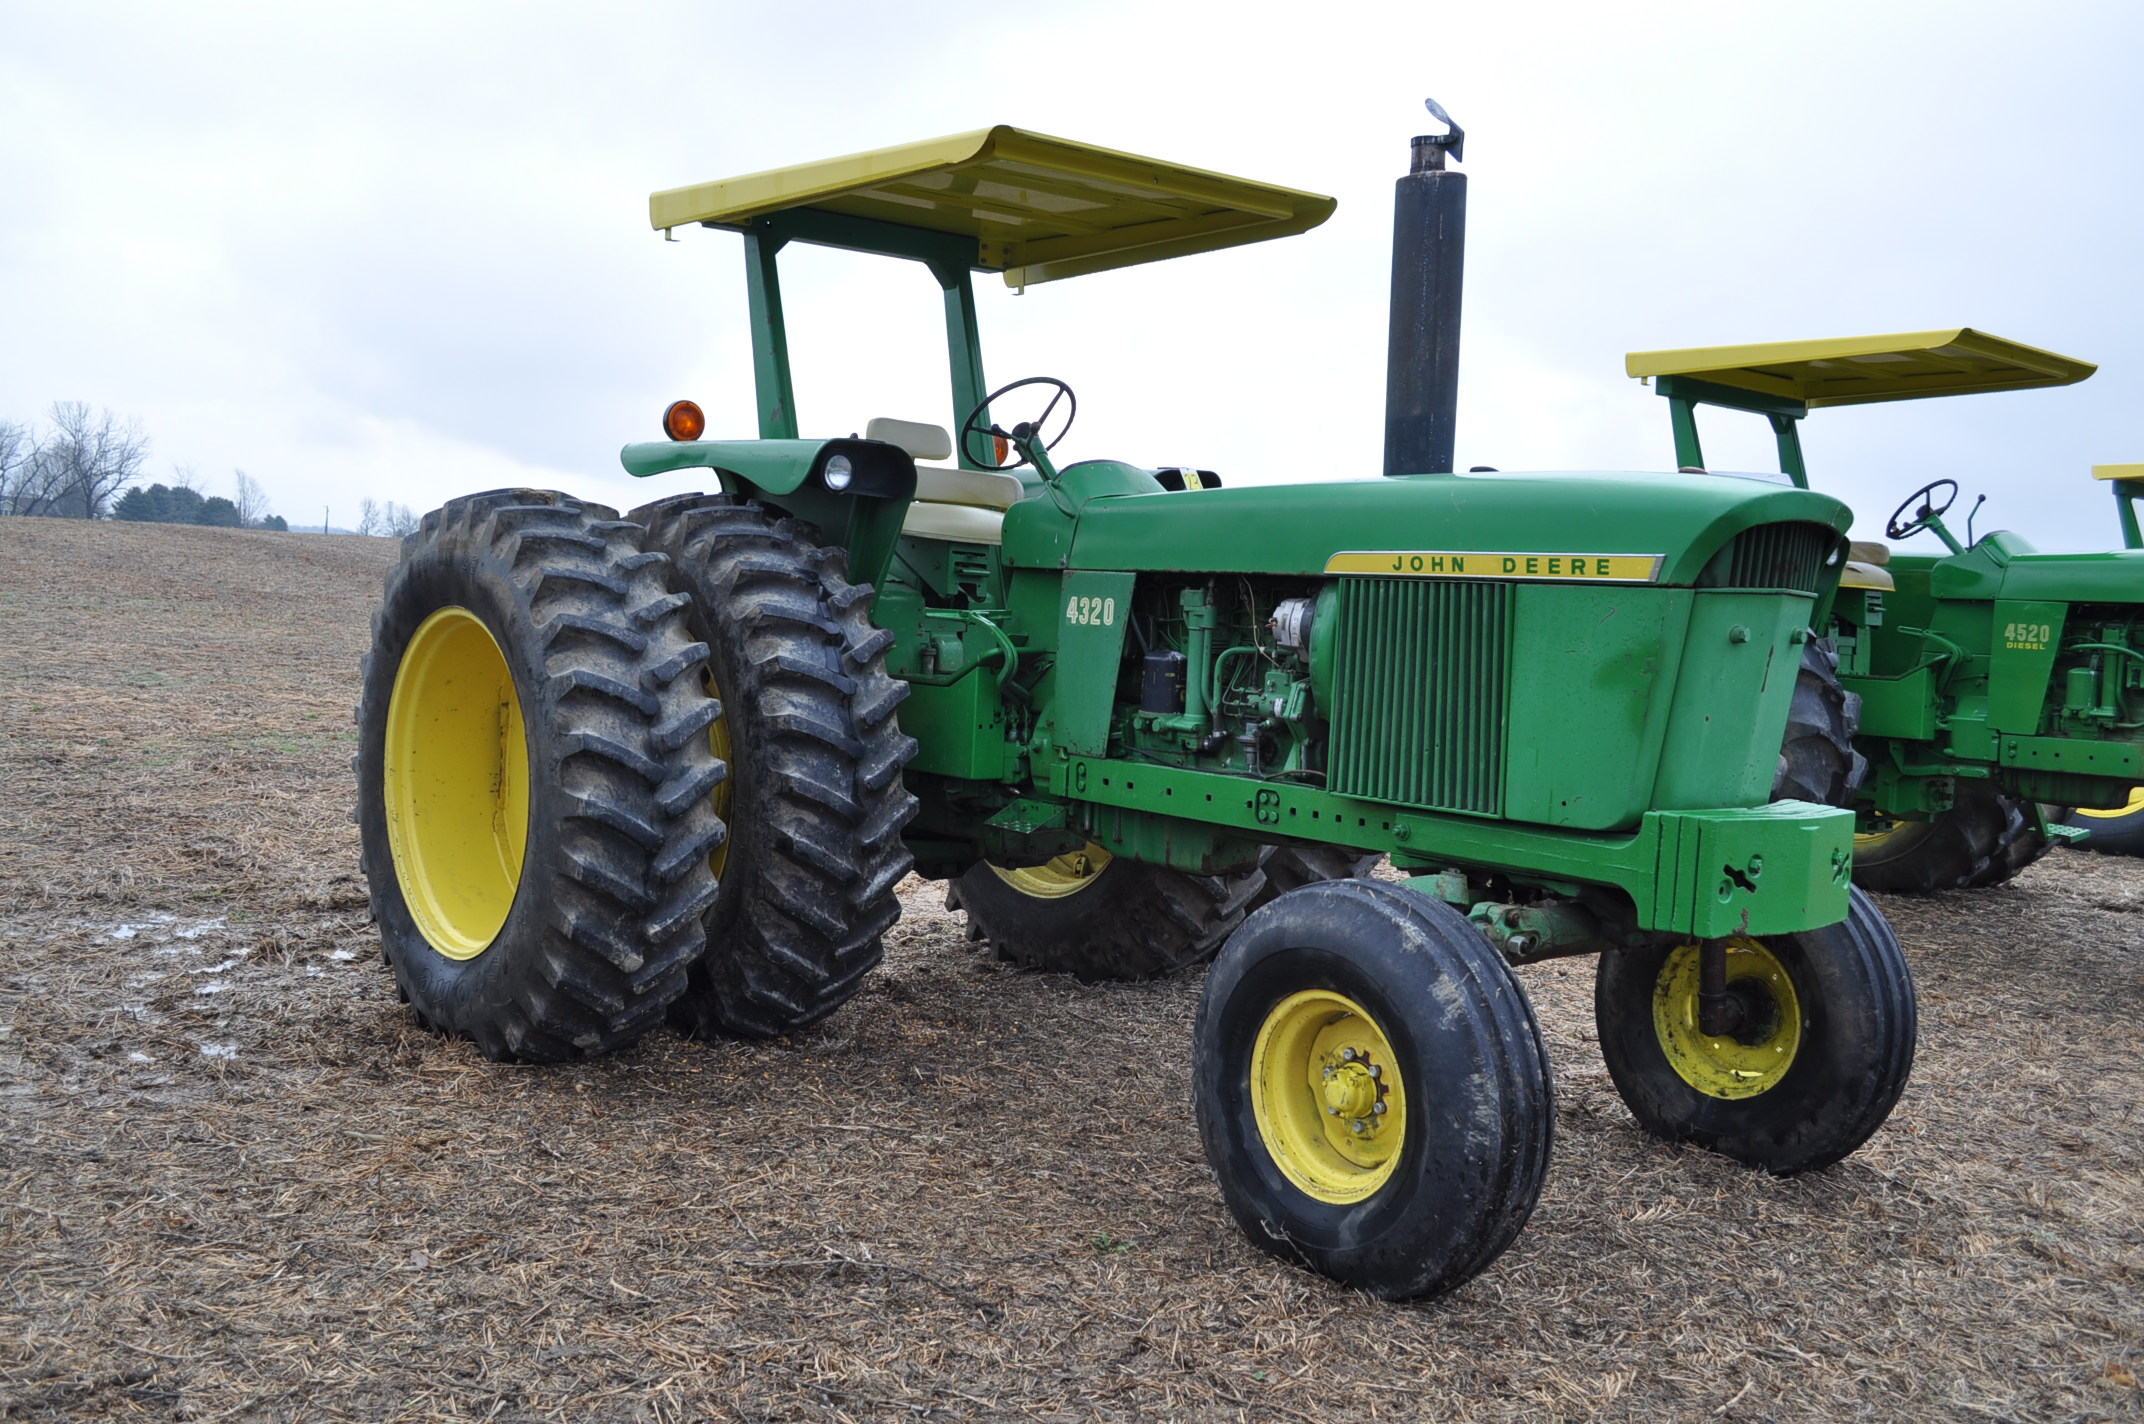 John Deere 4320 tractor, diesel, 18.4-38 duals, 10.00-16 wide front, Syncro, 2 hyd remotes, 540/1000 - Image 4 of 20